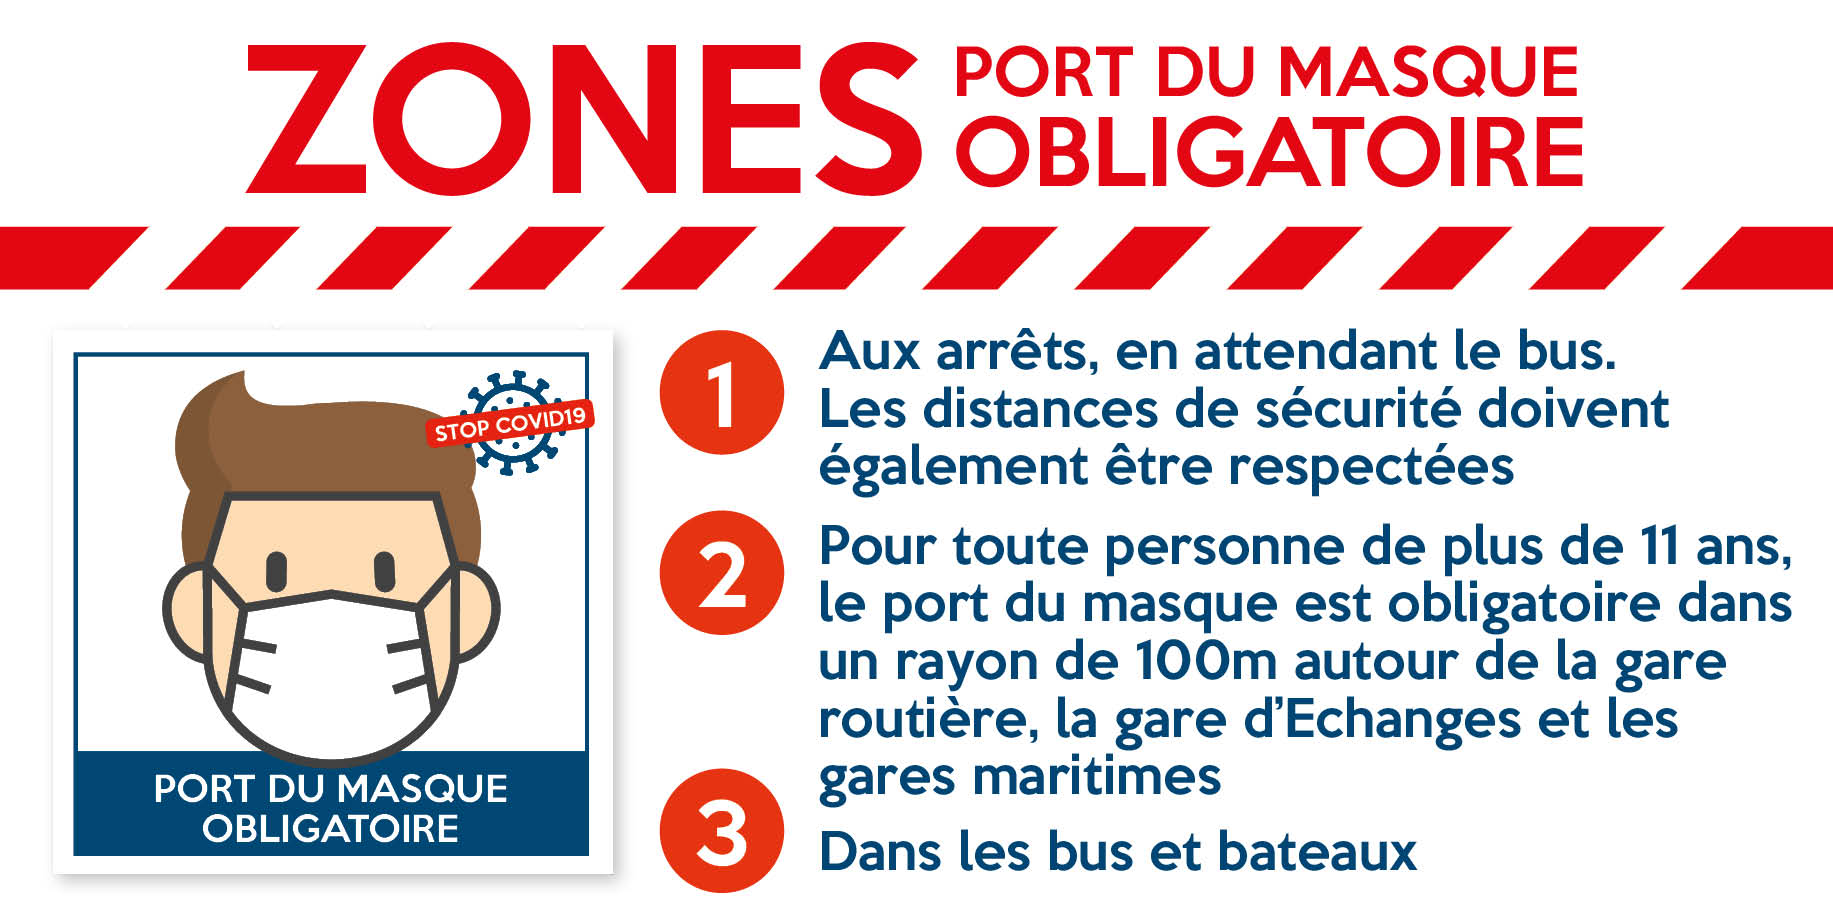 Covid19 zones port du masque CTRL